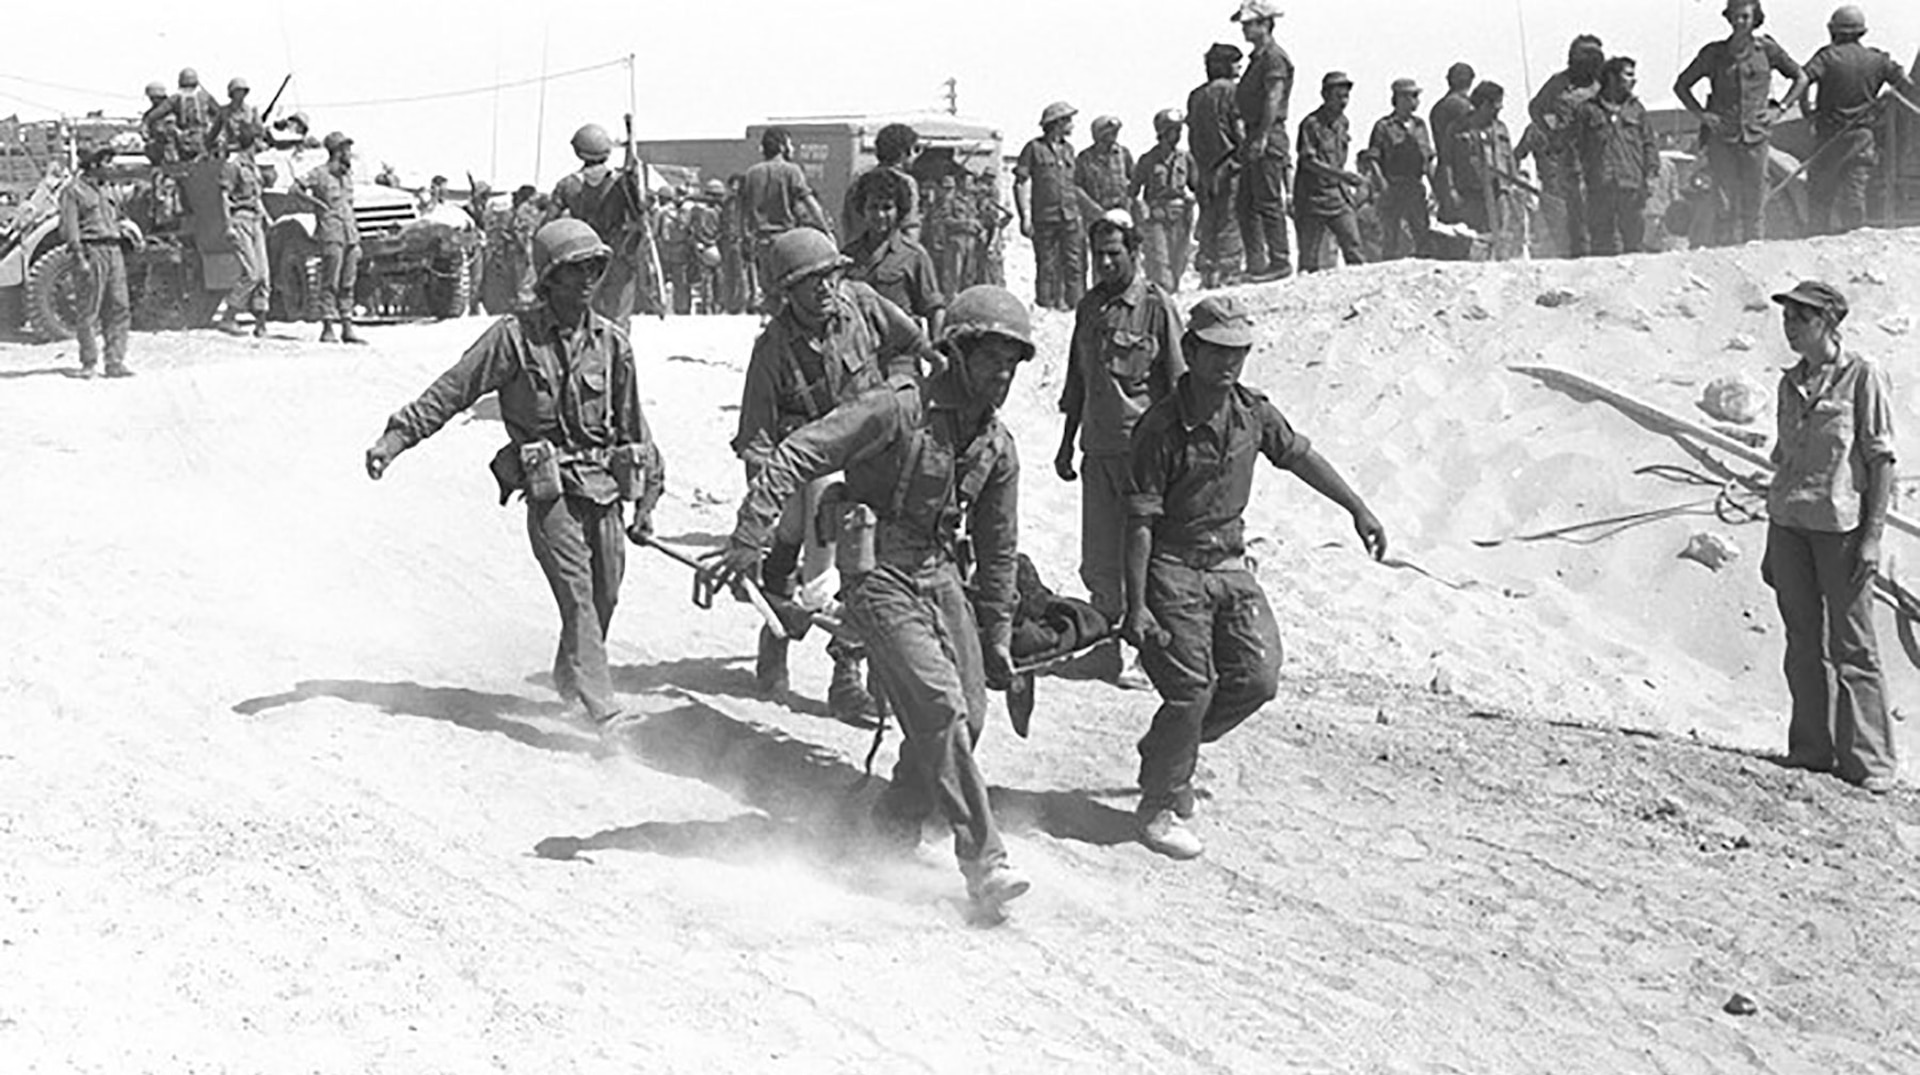 On the Yom Kippur of October 6, 1973, Egypt and Syria launched a coordinated surprise attack on Israel. Pictured here is an IDF medical crew evacuating an injured soldier from the battle field. (Israel Defense Forces, 11 October, 2005)